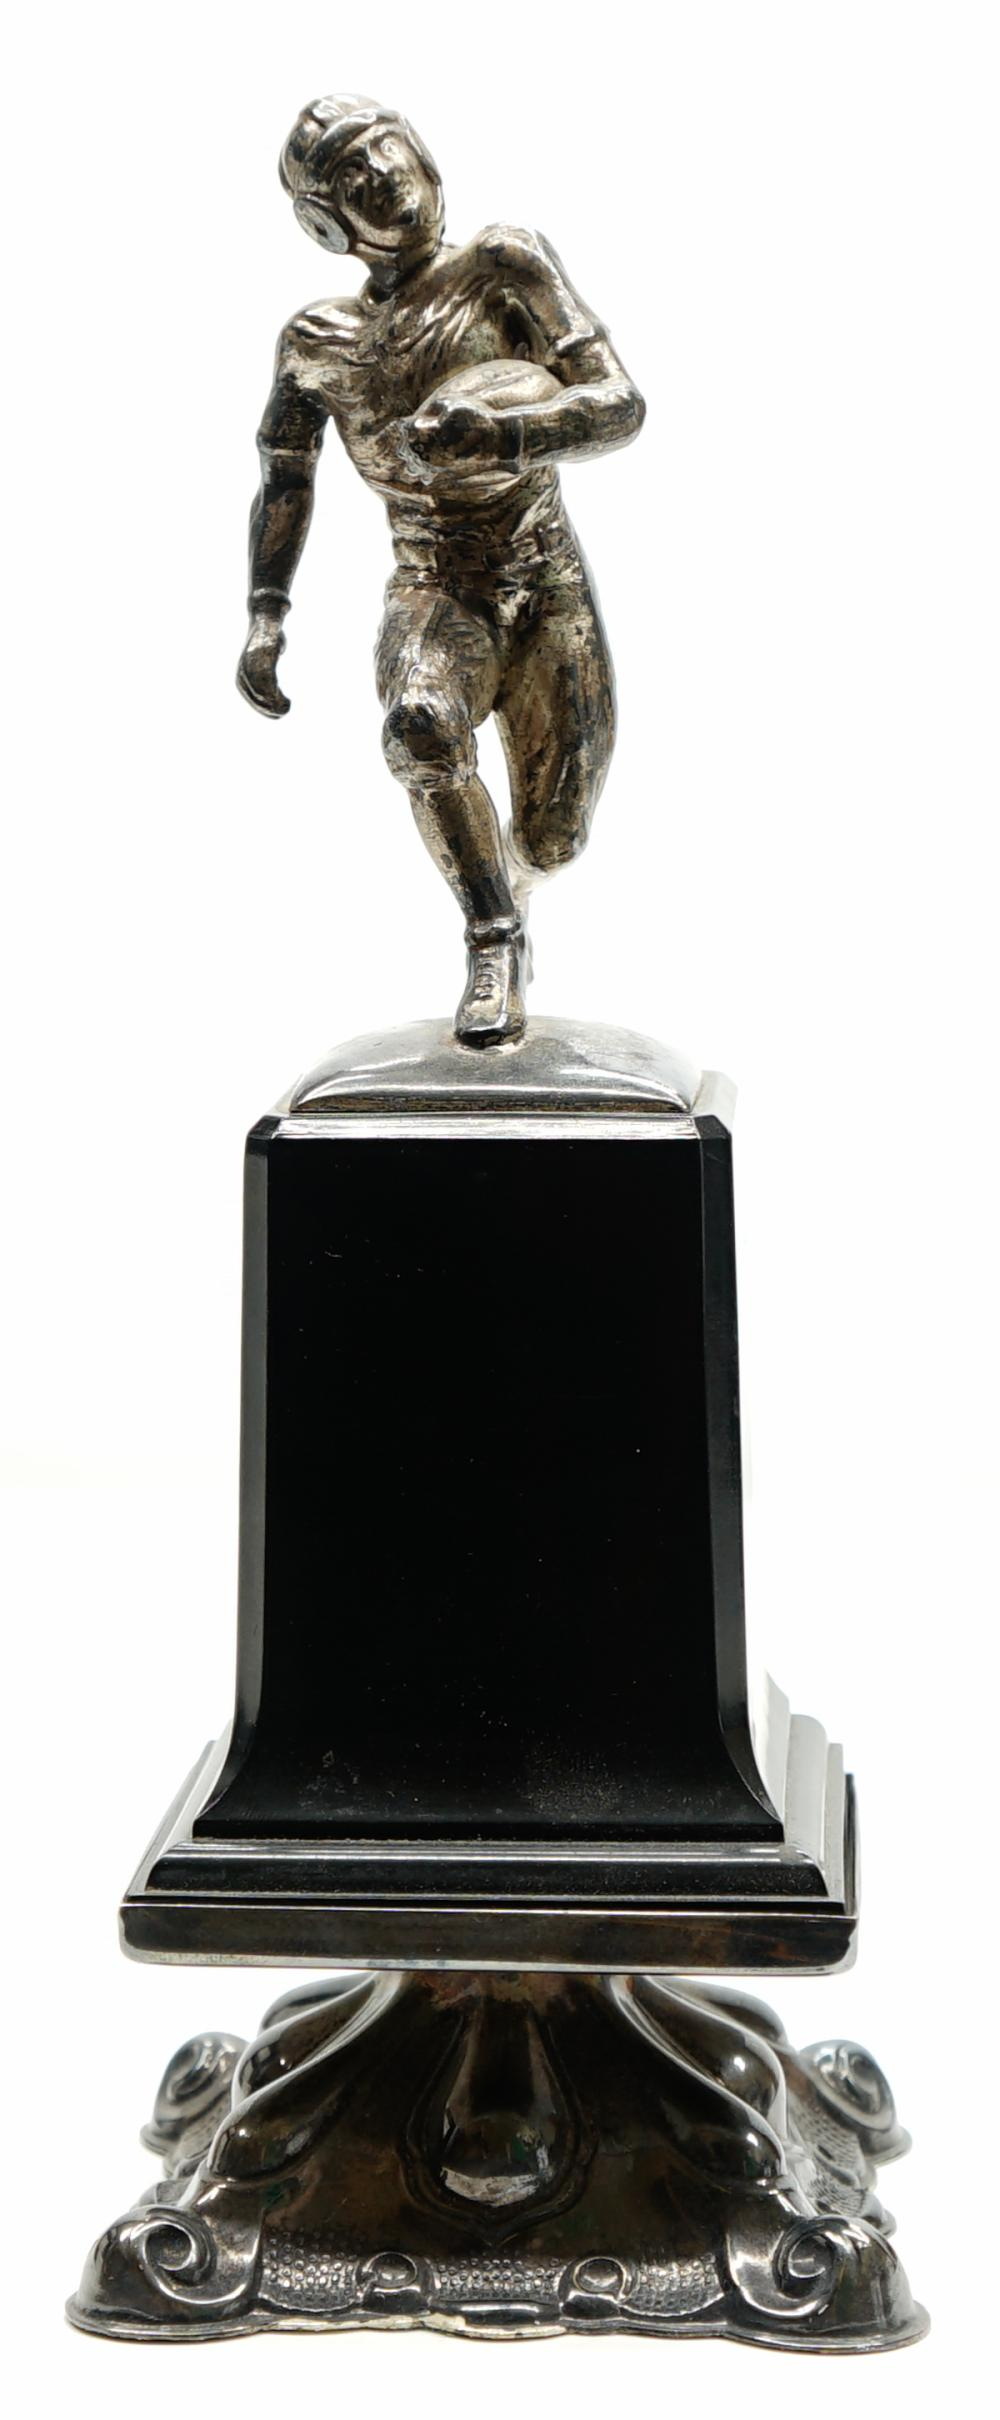 Vintage Silver Plate Football Trophy